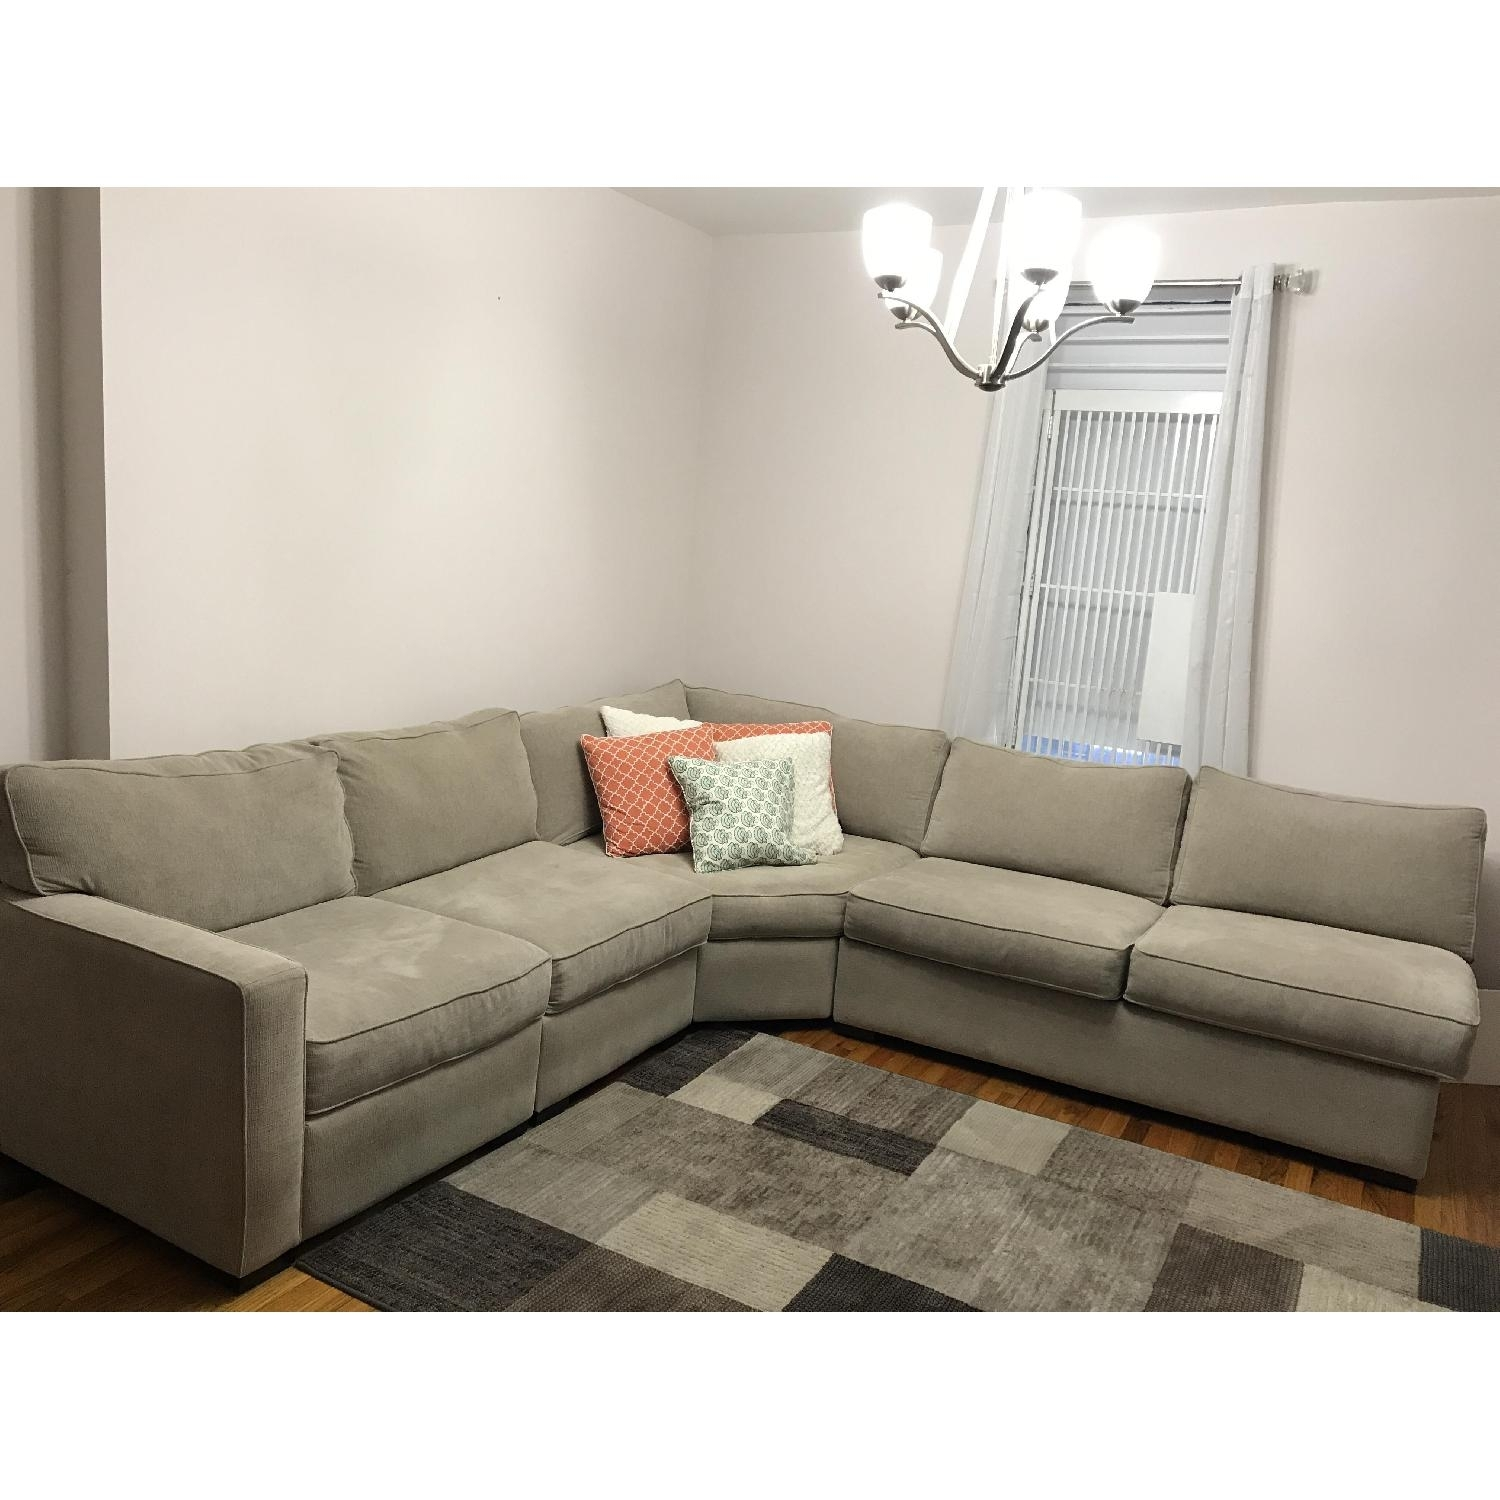 Magnolia Home Joanna Gaines Homestead Threece Sectional Sofa Destin for Magnolia Home Homestead 3 Piece Sectionals by Joanna Gaines (Image 21 of 30)